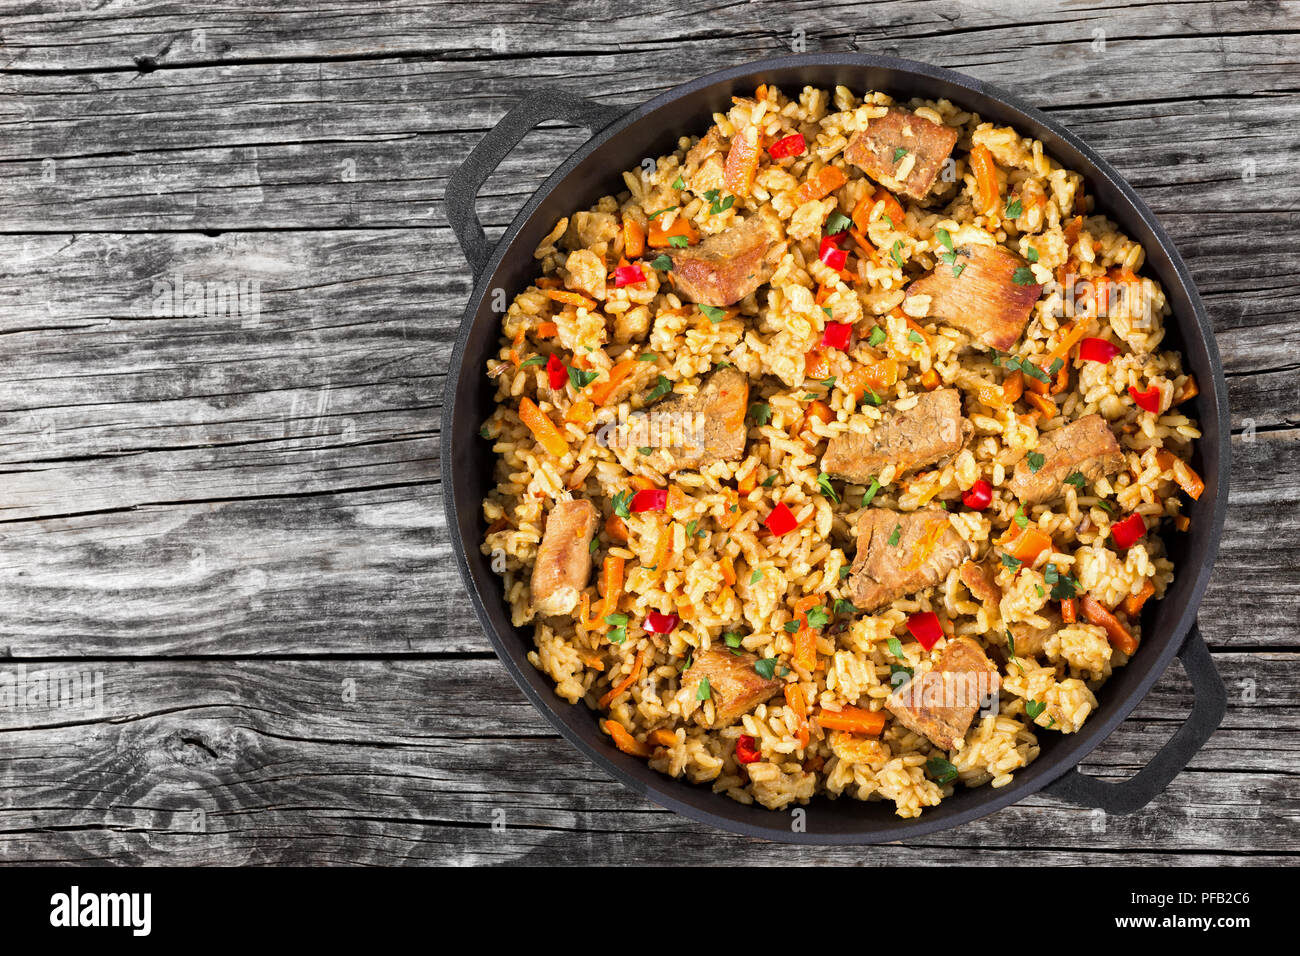 Homemade prepared paella with meat, pepper, vegetables and spices in iron pan on wooden planks, copy space left,  view from above - Stock Image